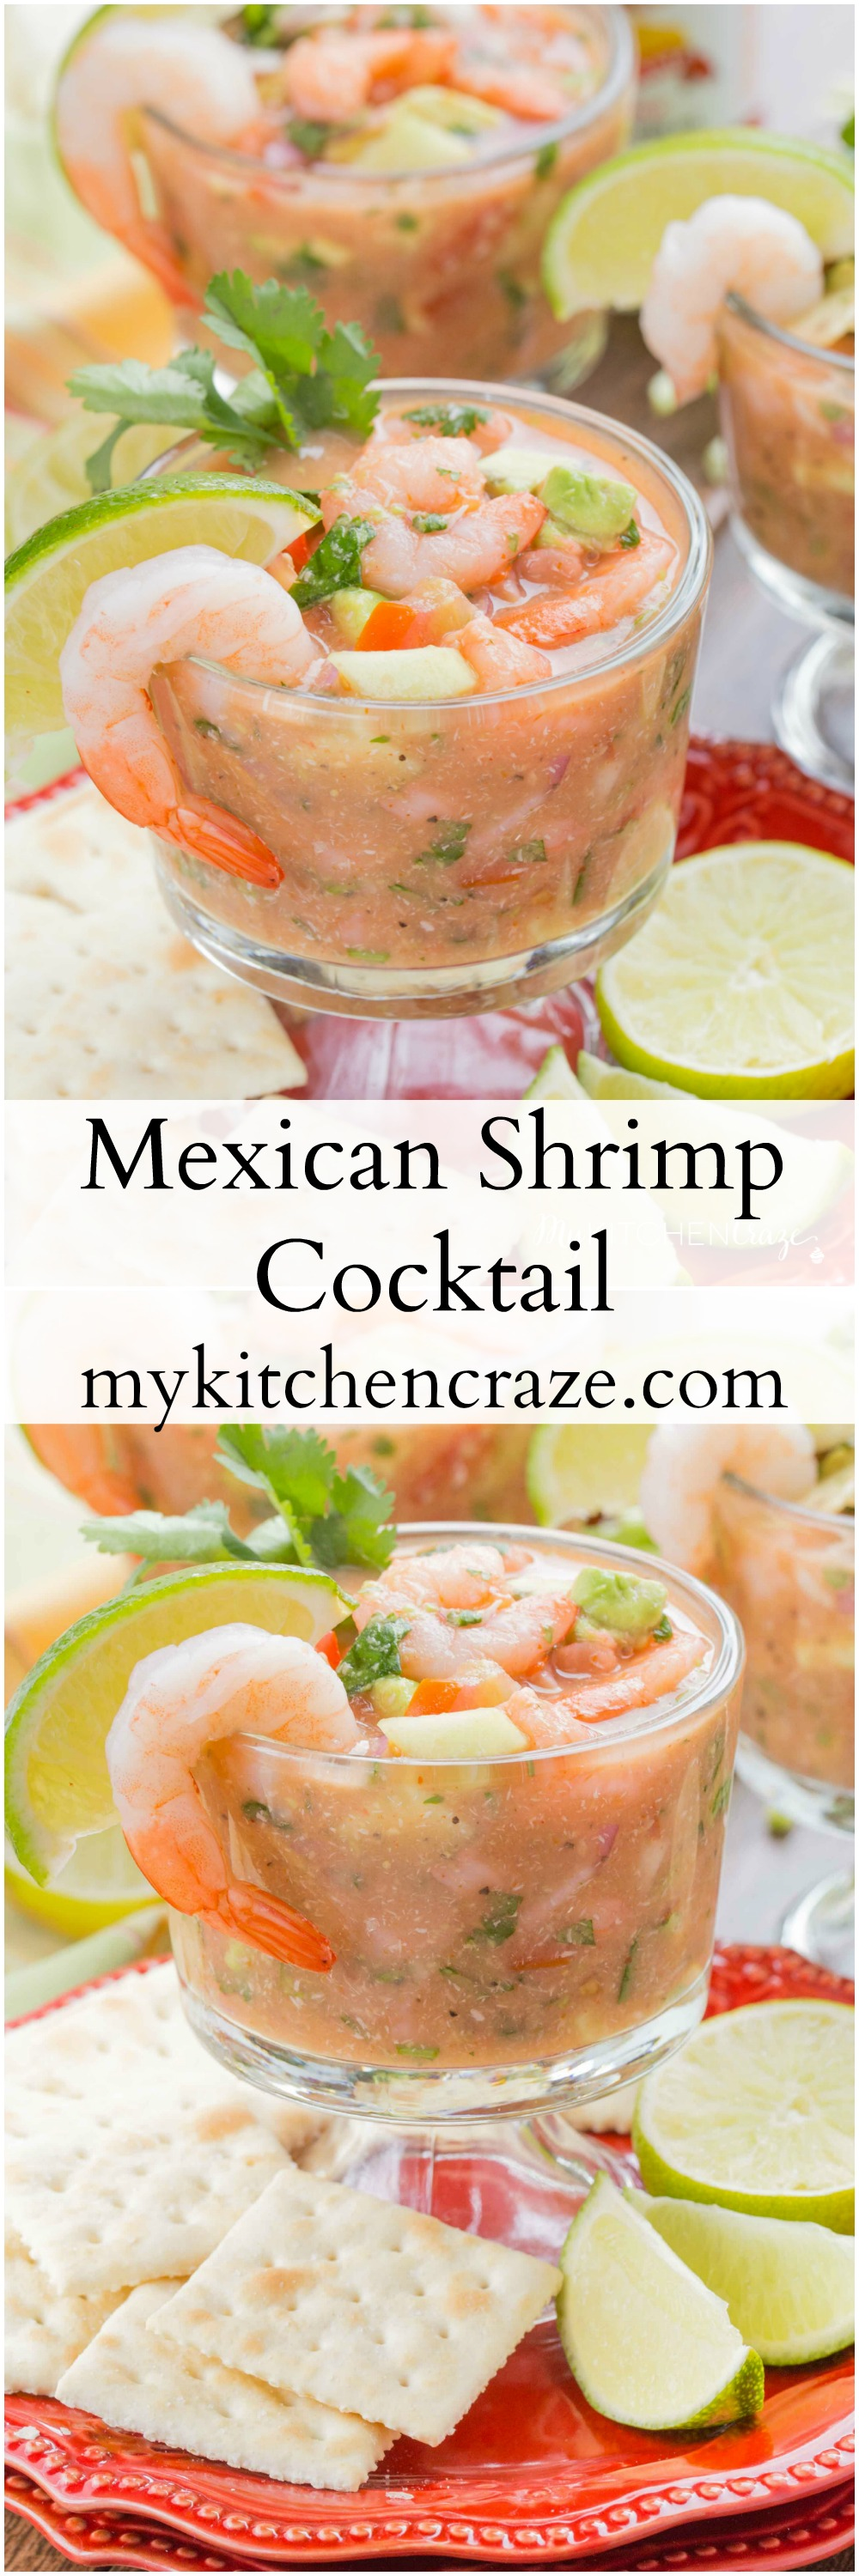 Mexican Shrimp Cocktail ~ mykitchencraze.com